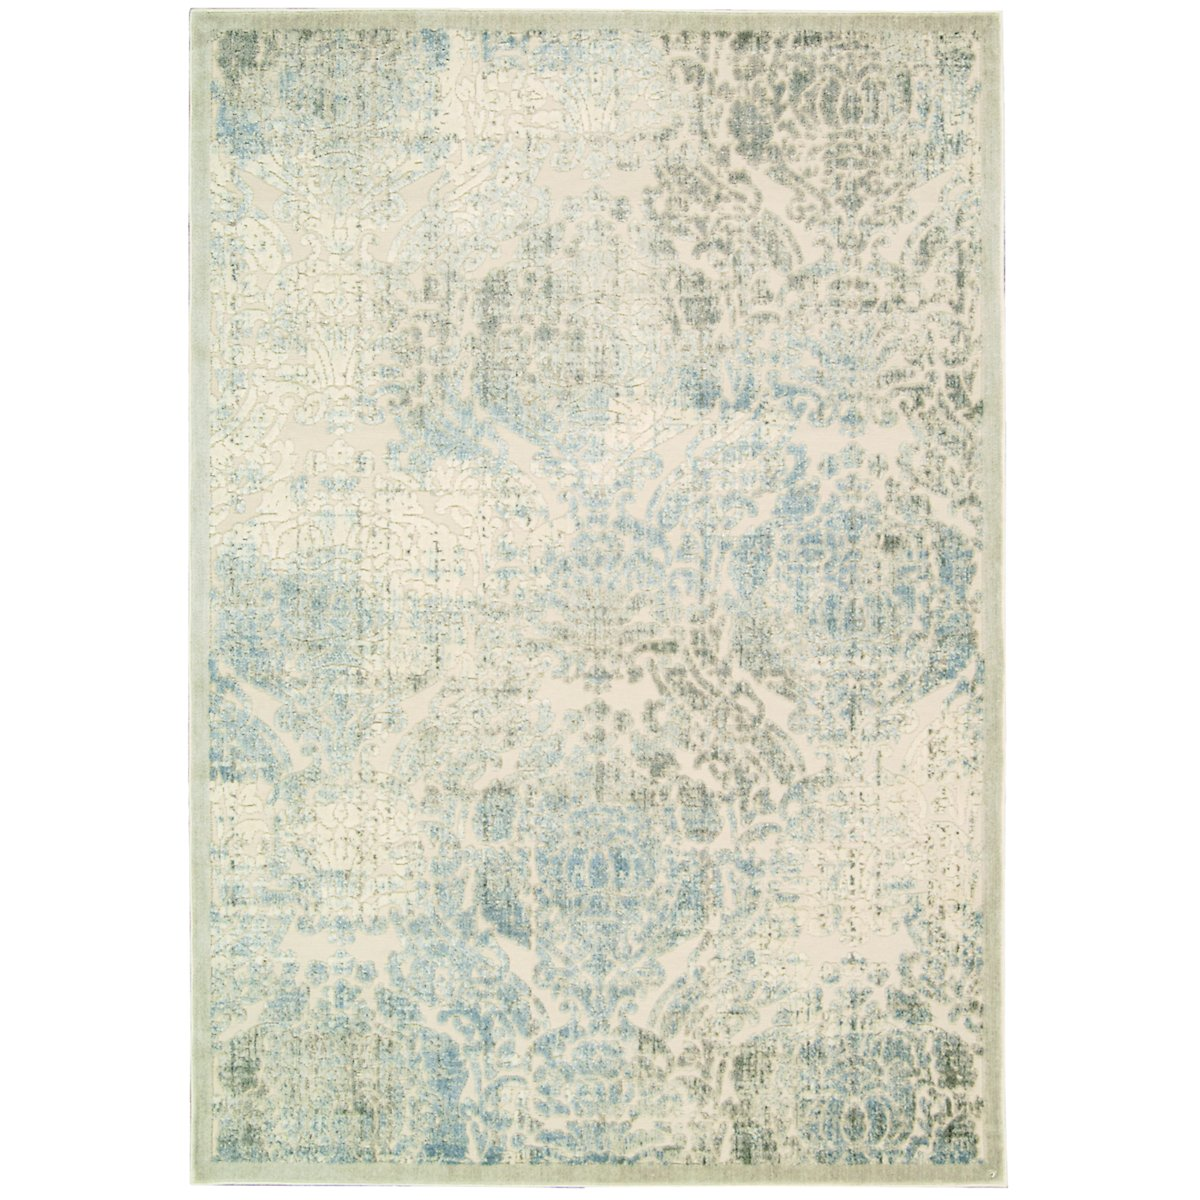 Graphic Beige 5X7 Area Rug